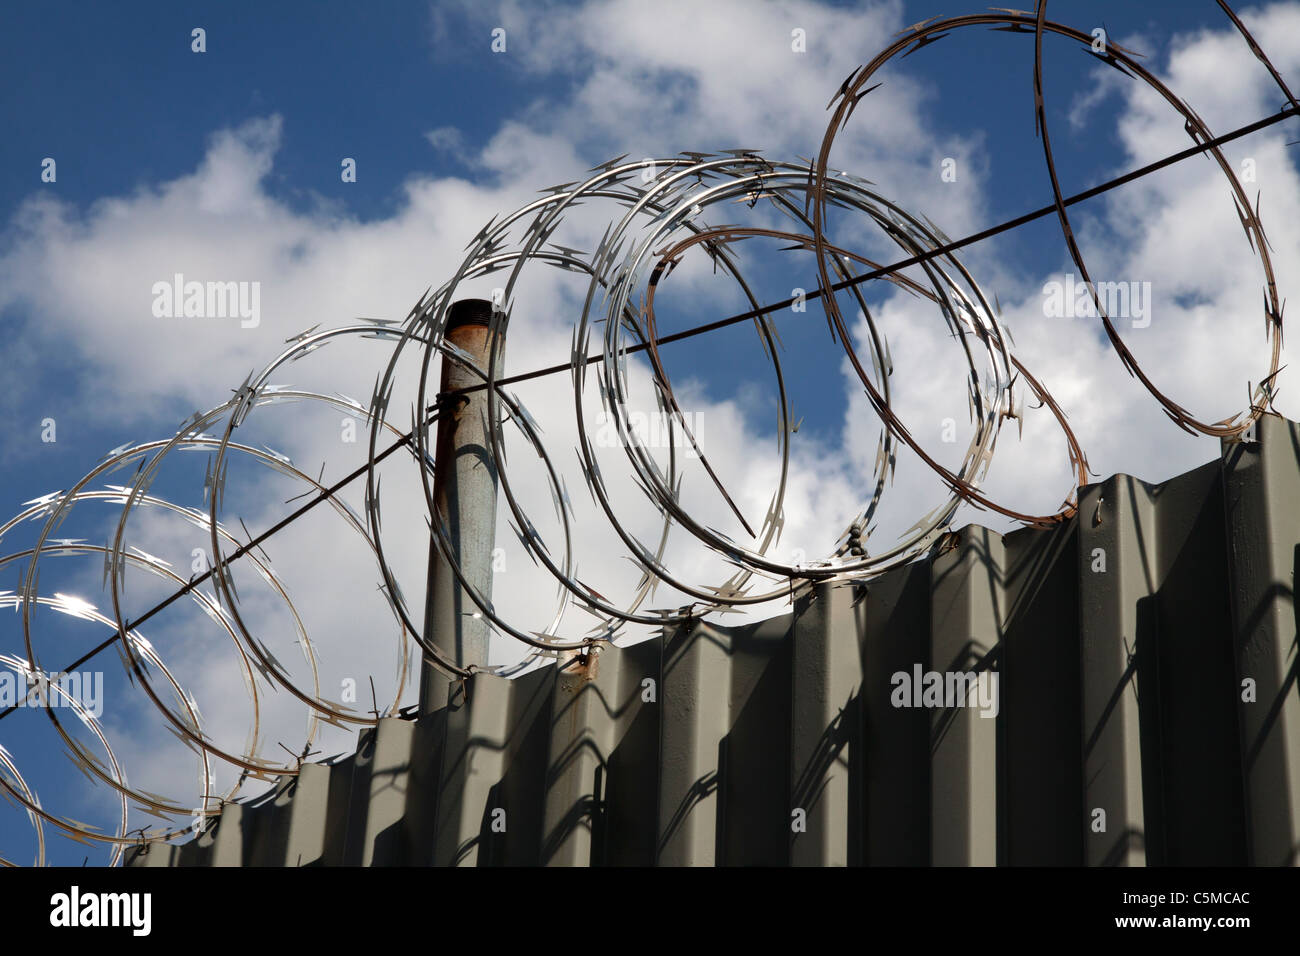 Barbed Wire Cut Out Stock Photos & Barbed Wire Cut Out Stock Images ...